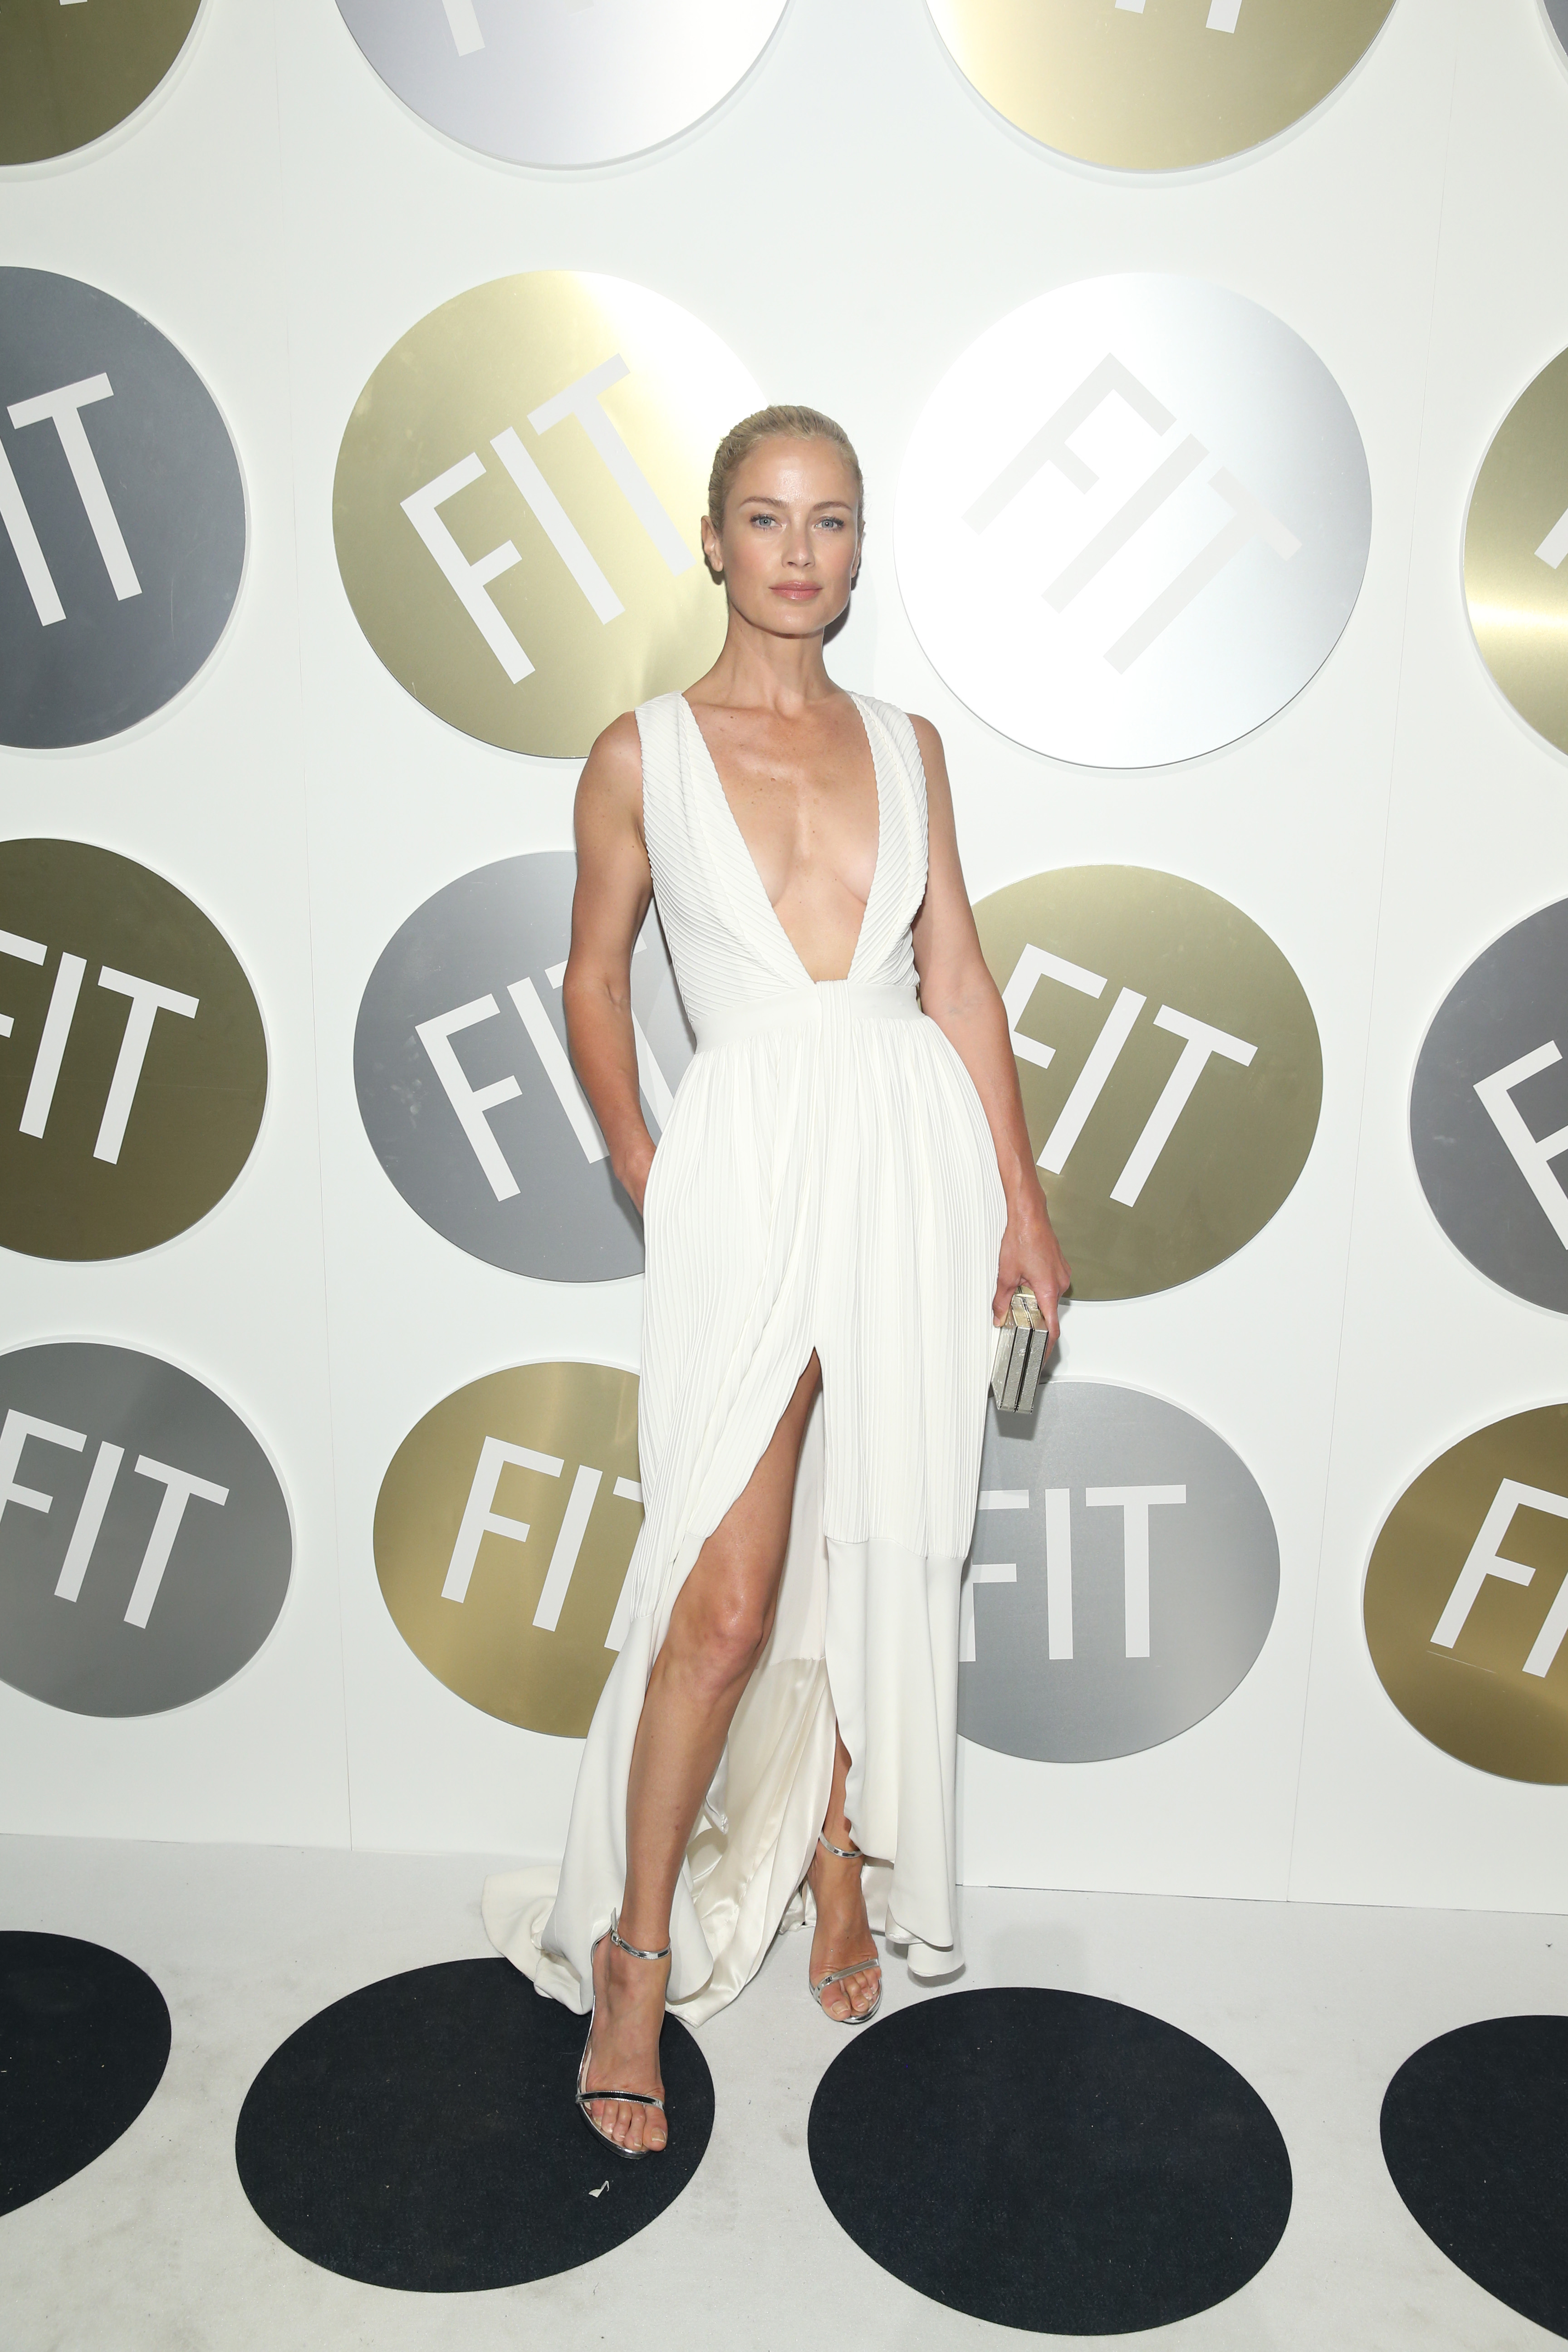 NEW YORK, NY - JUNE 14:  Presenter and model, Carolyn Murphy attends FIT's 2018 Annual Awards Gala at Cipriani 42nd Street on June 14, 2018 in New York City.  (Photo by Bennett Raglin/Getty Images for FIT)